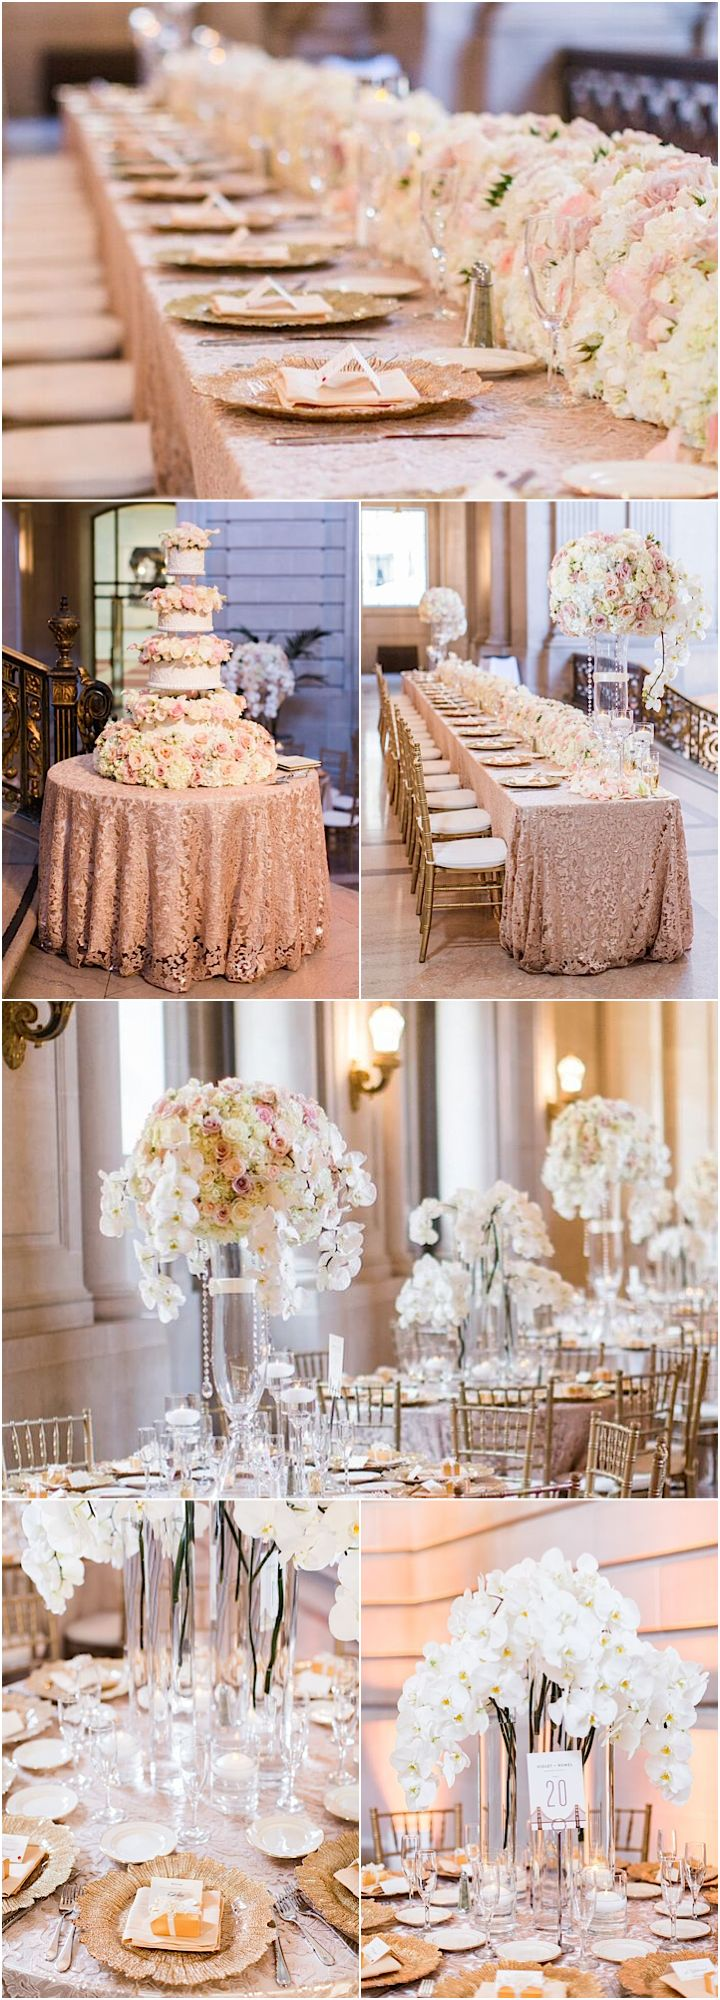 Photography: Blueberry Photography; glamorous wedding reception